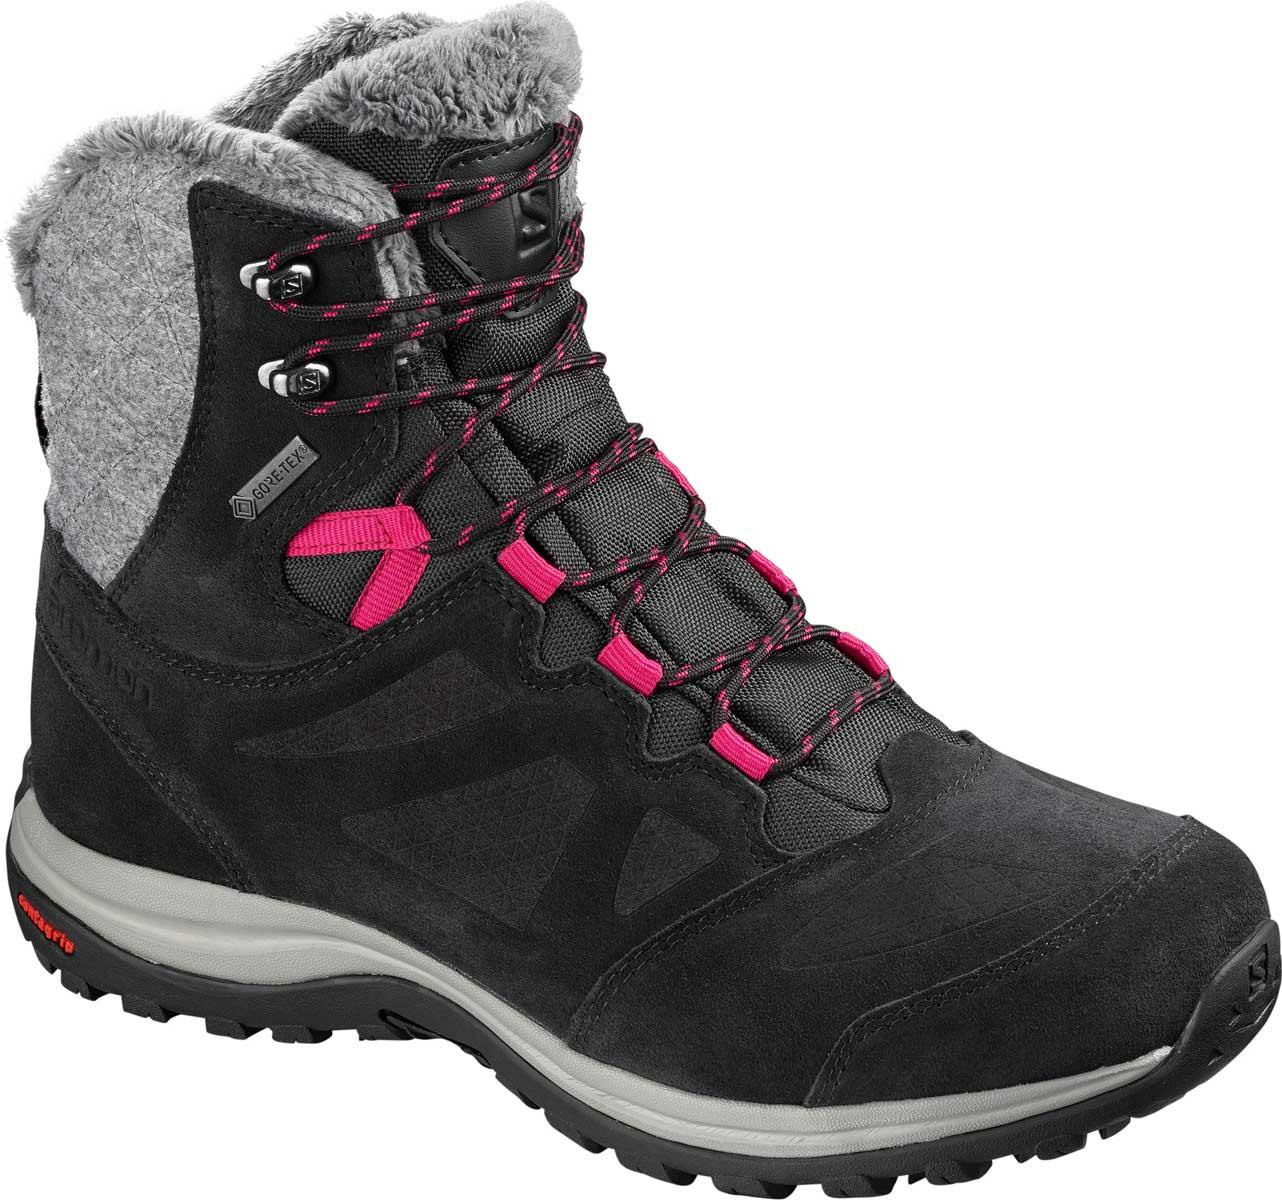 Salomon Ellipse Winter GTX W in Phantom and Black